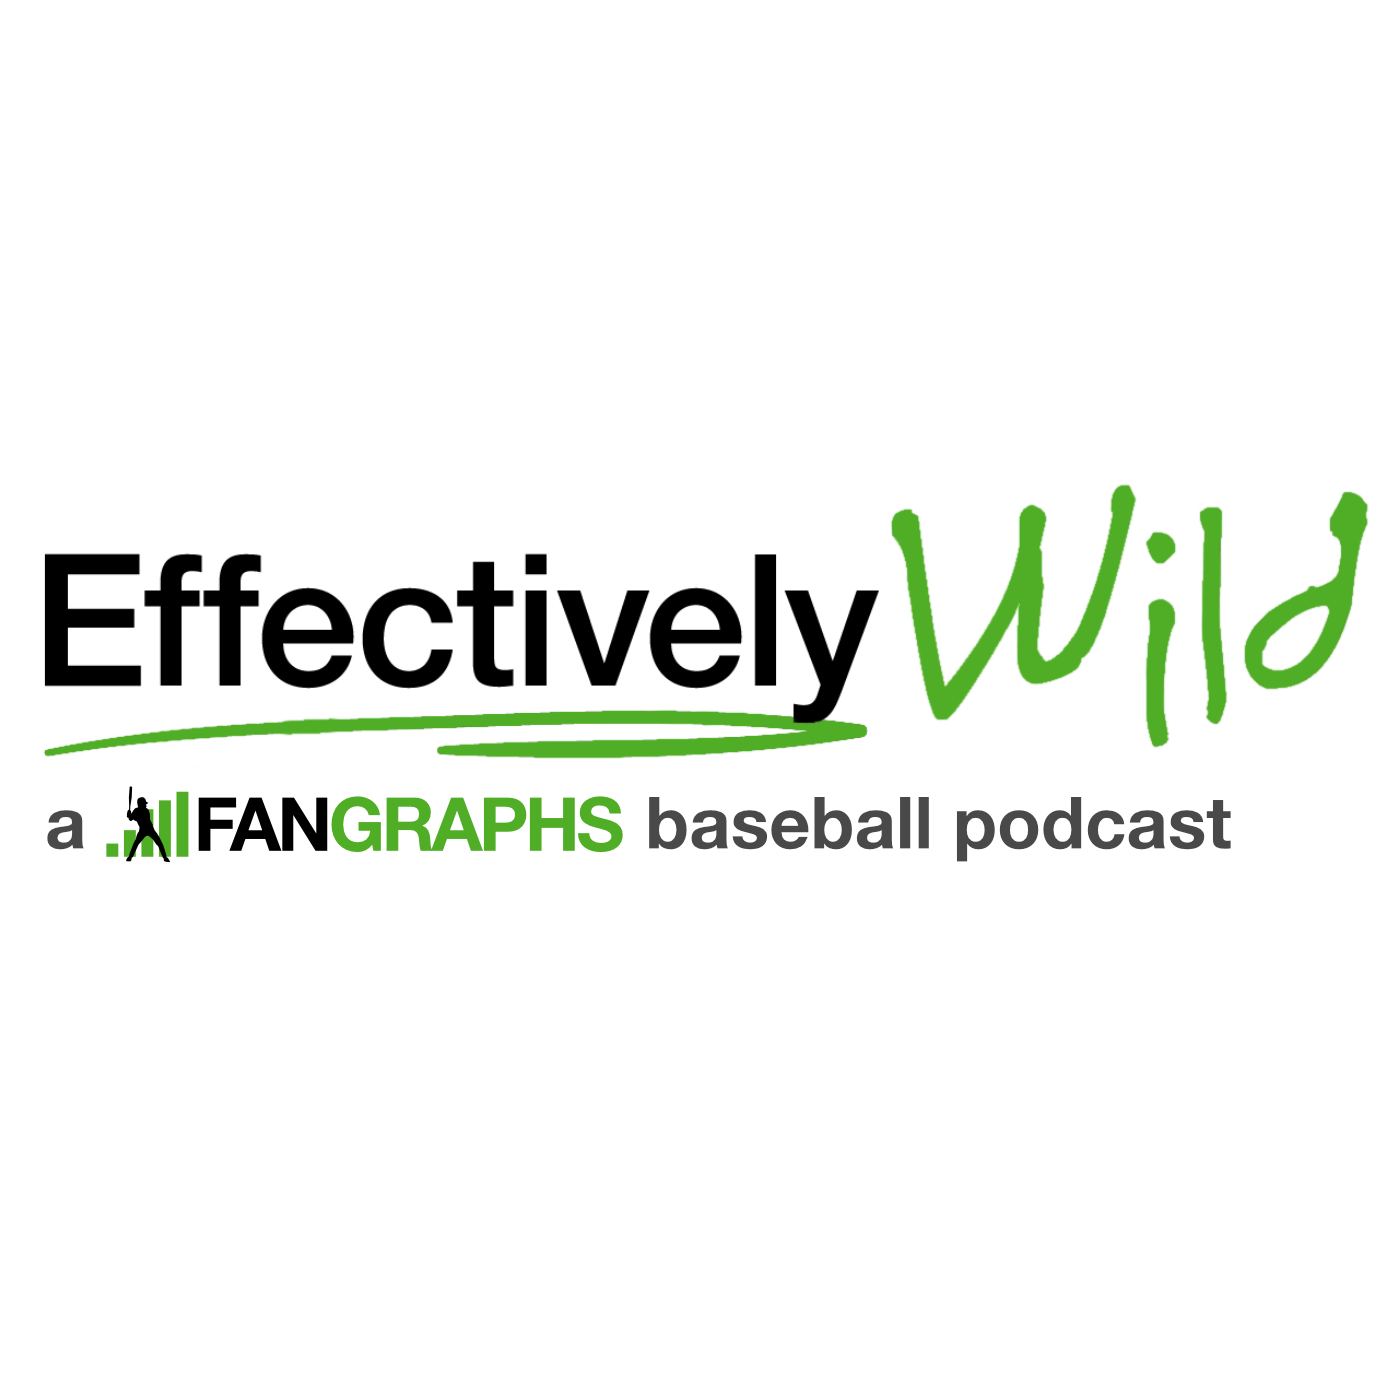 Effectively Wild Episode 1360: The Team Fun Draft